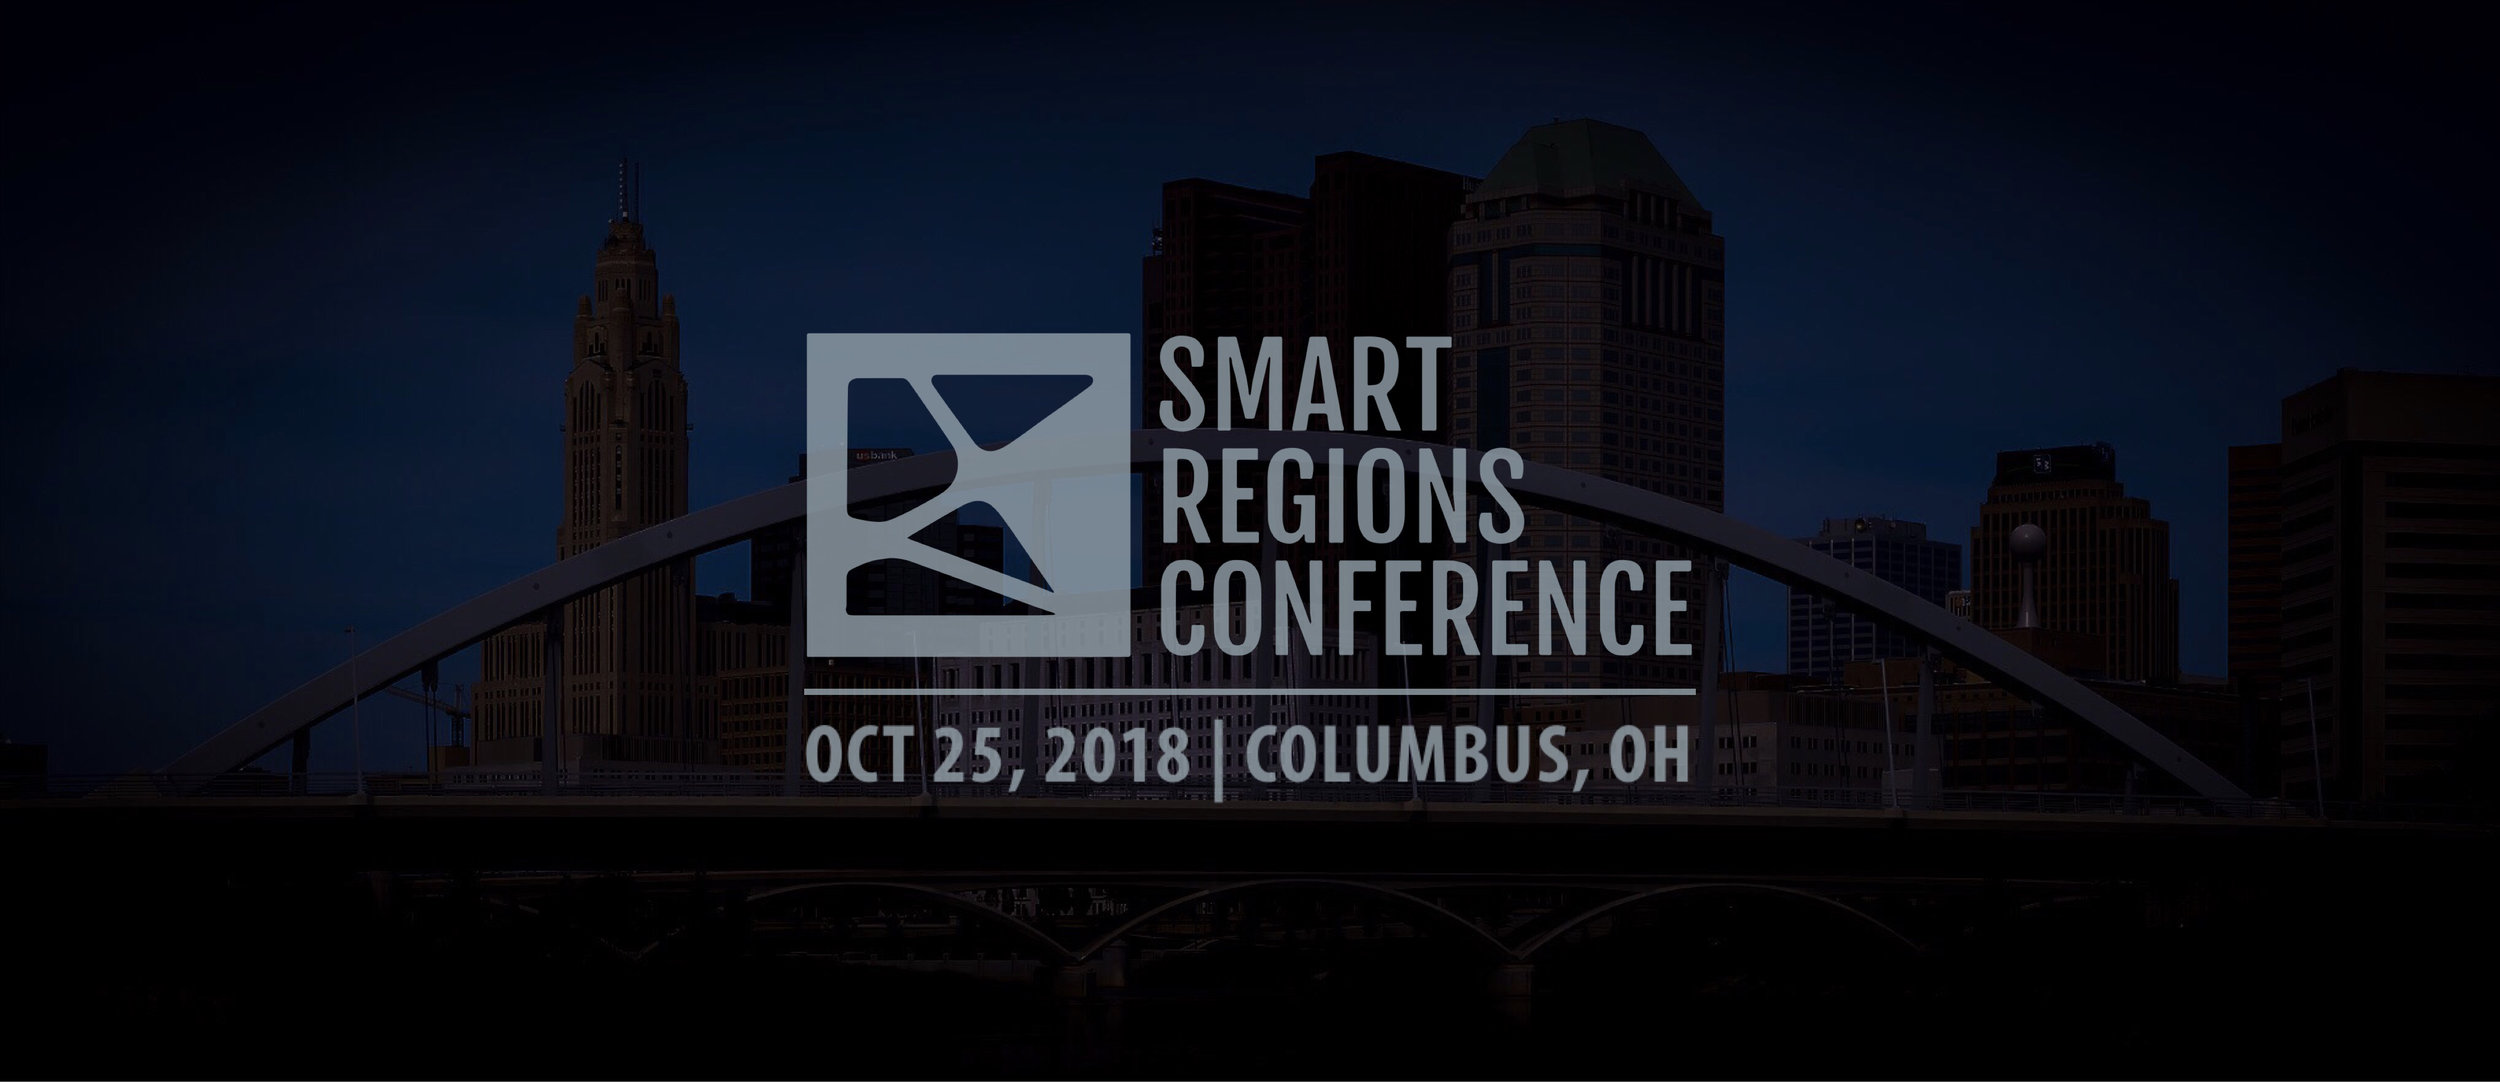 Join us at the 2nd Annual Smart Regions Conference!